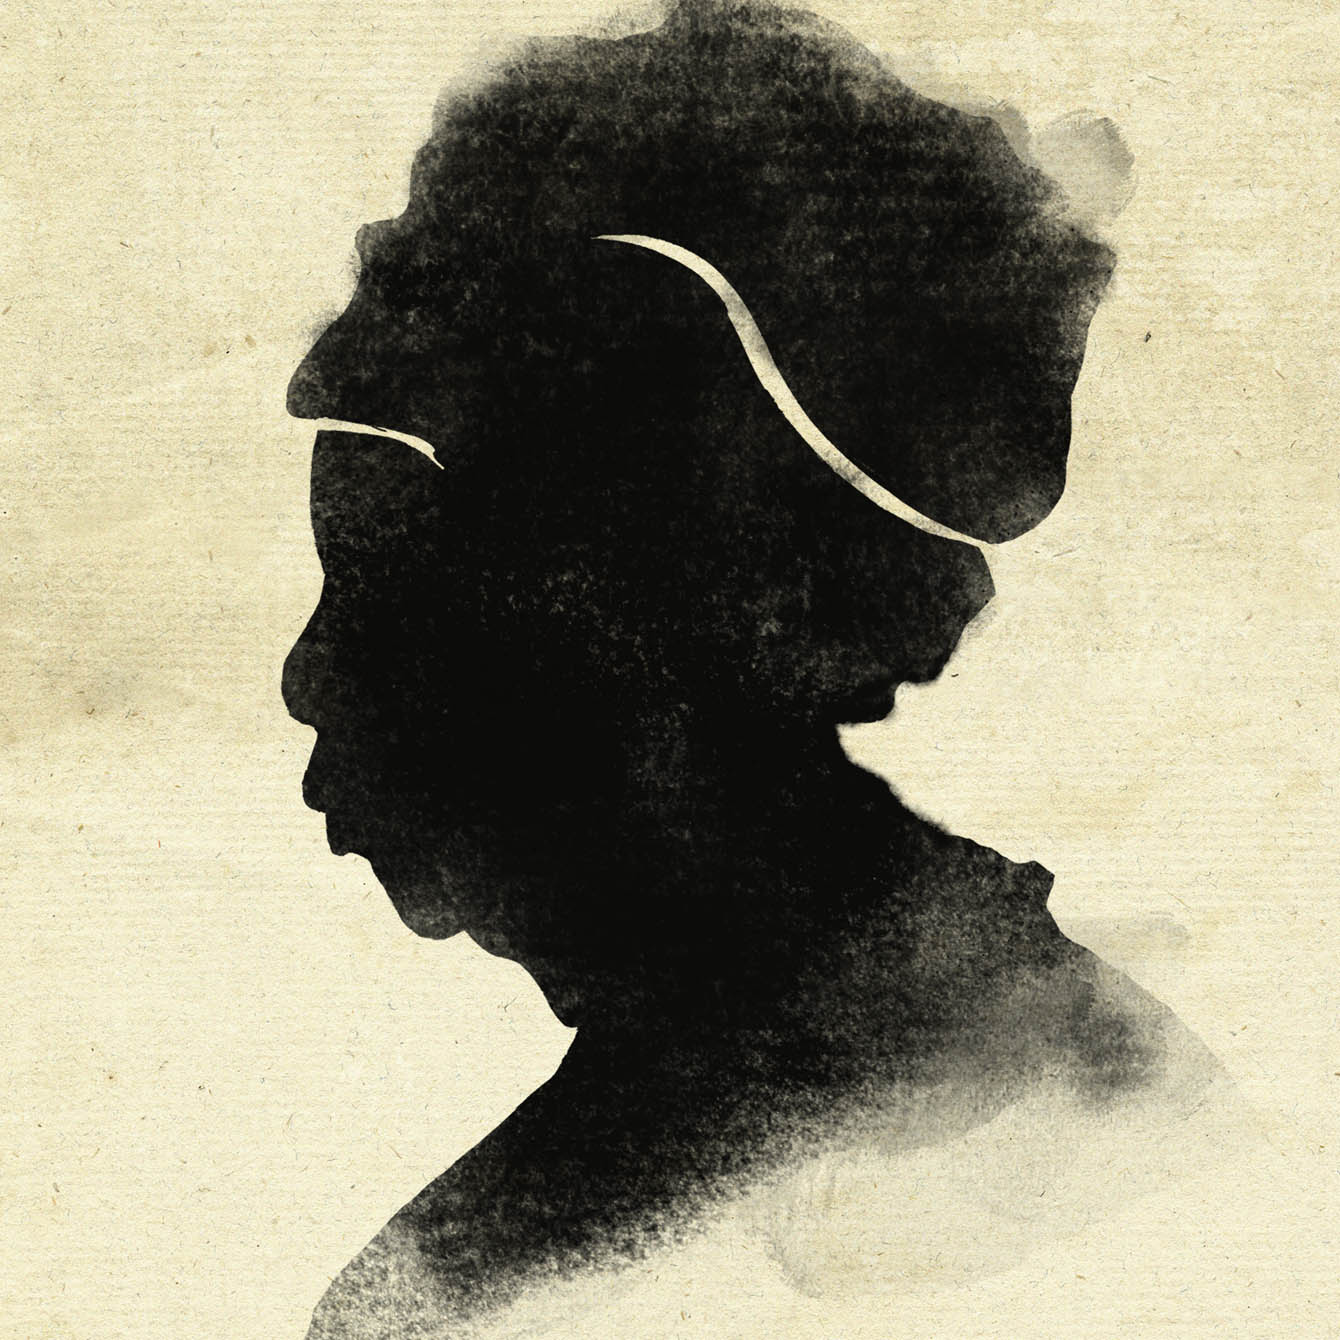 Silhouette of an Elderly Woman